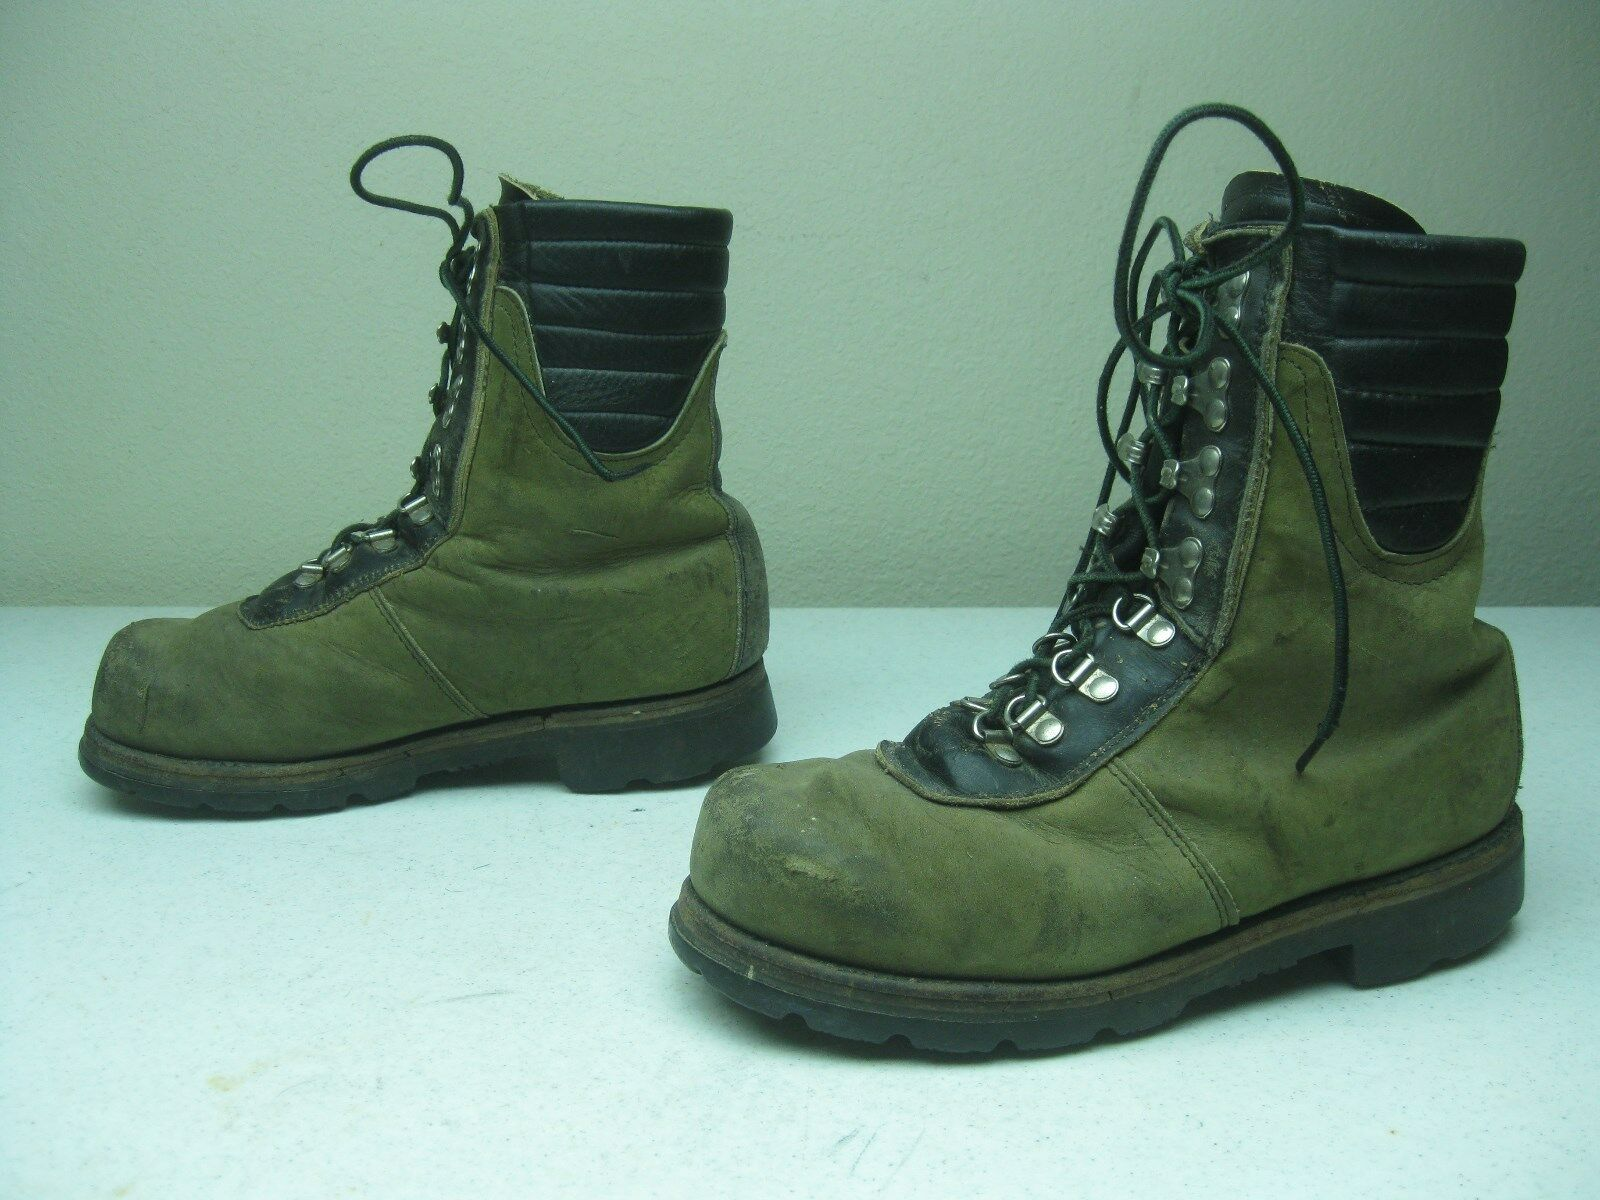 GRAY GREEN LEATHER LEHIGH INSULATED STEEL TOE MADE IN USA WORK BIKER BOOTS 7.5 D